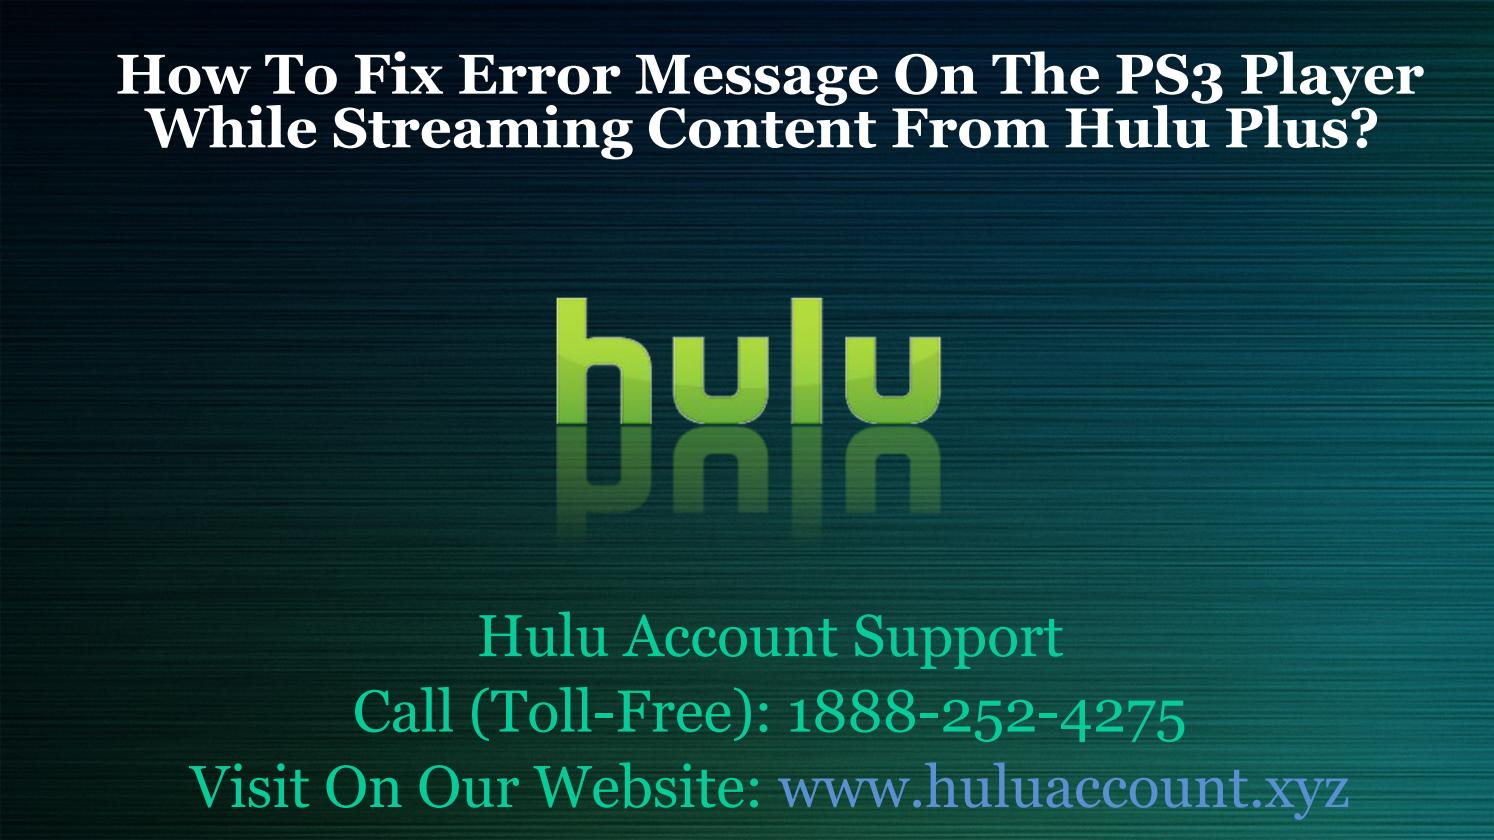 How To Fix Error Message On The PS3 Player While Streaming Content From  Hulu Plus?